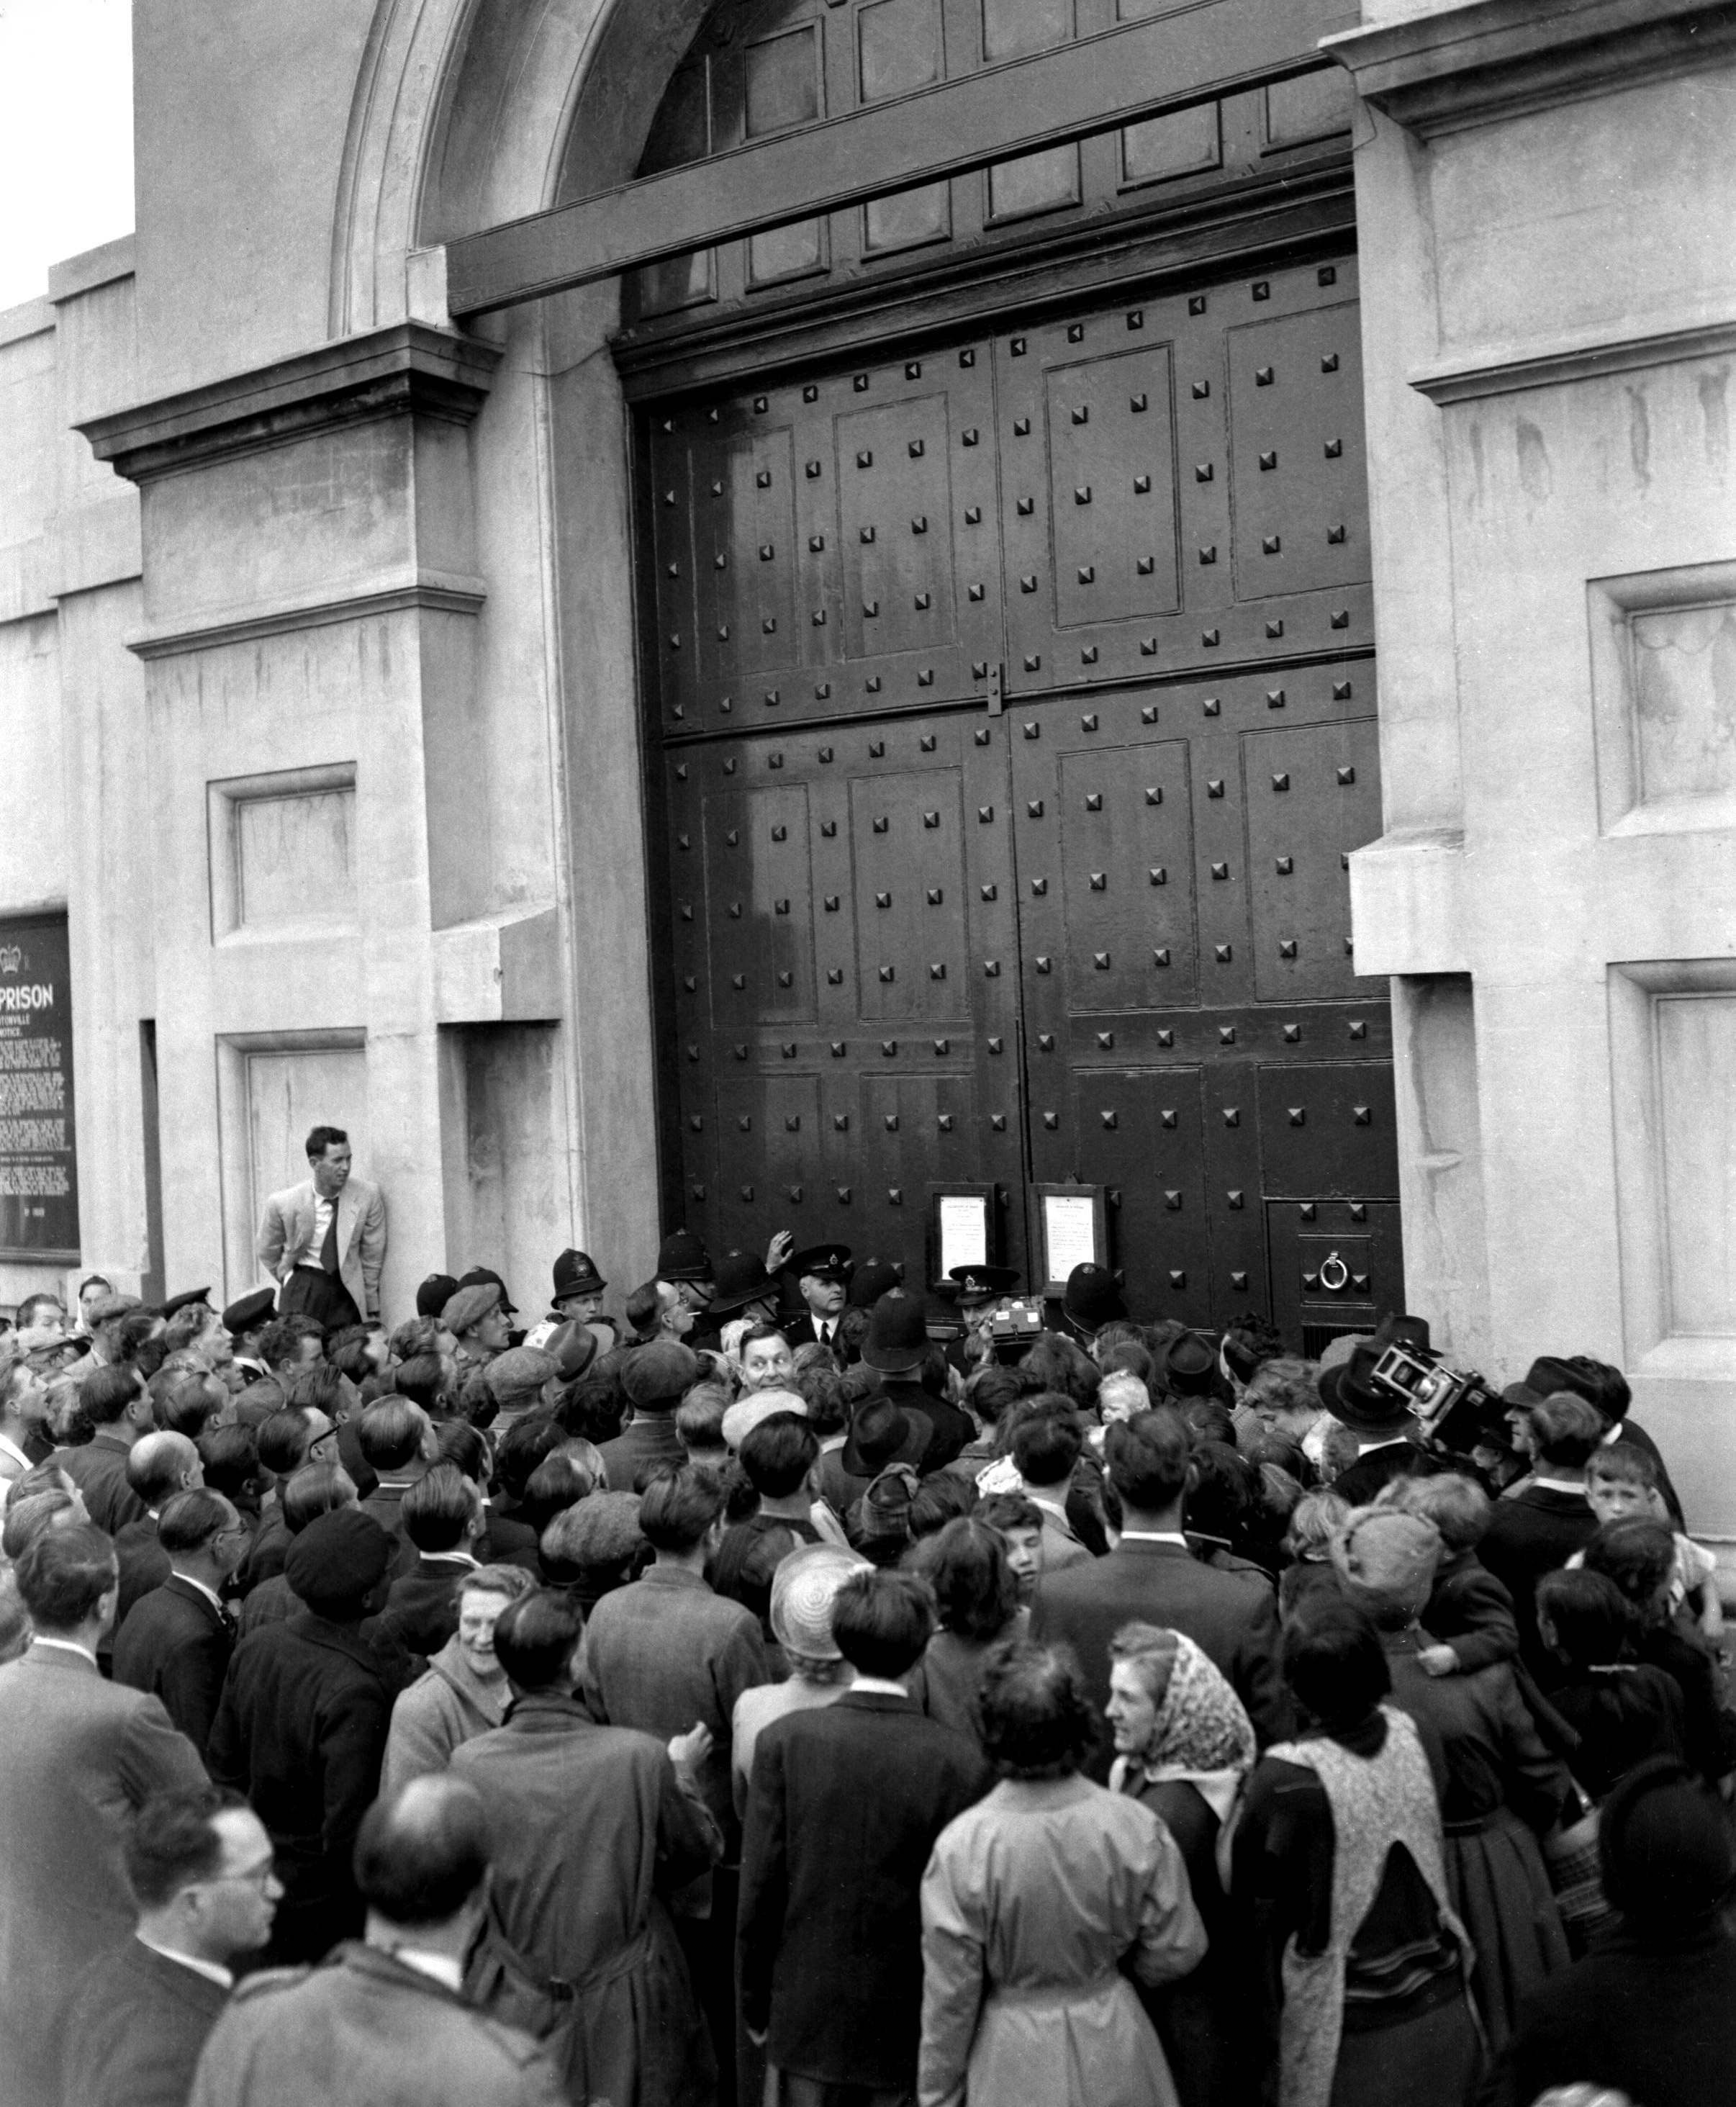 A section of the crowd which gathered outside the gates of Pentoville Prison, London on July 15, 1953 to see the notice of execution for John Reginald Halliday Christie.